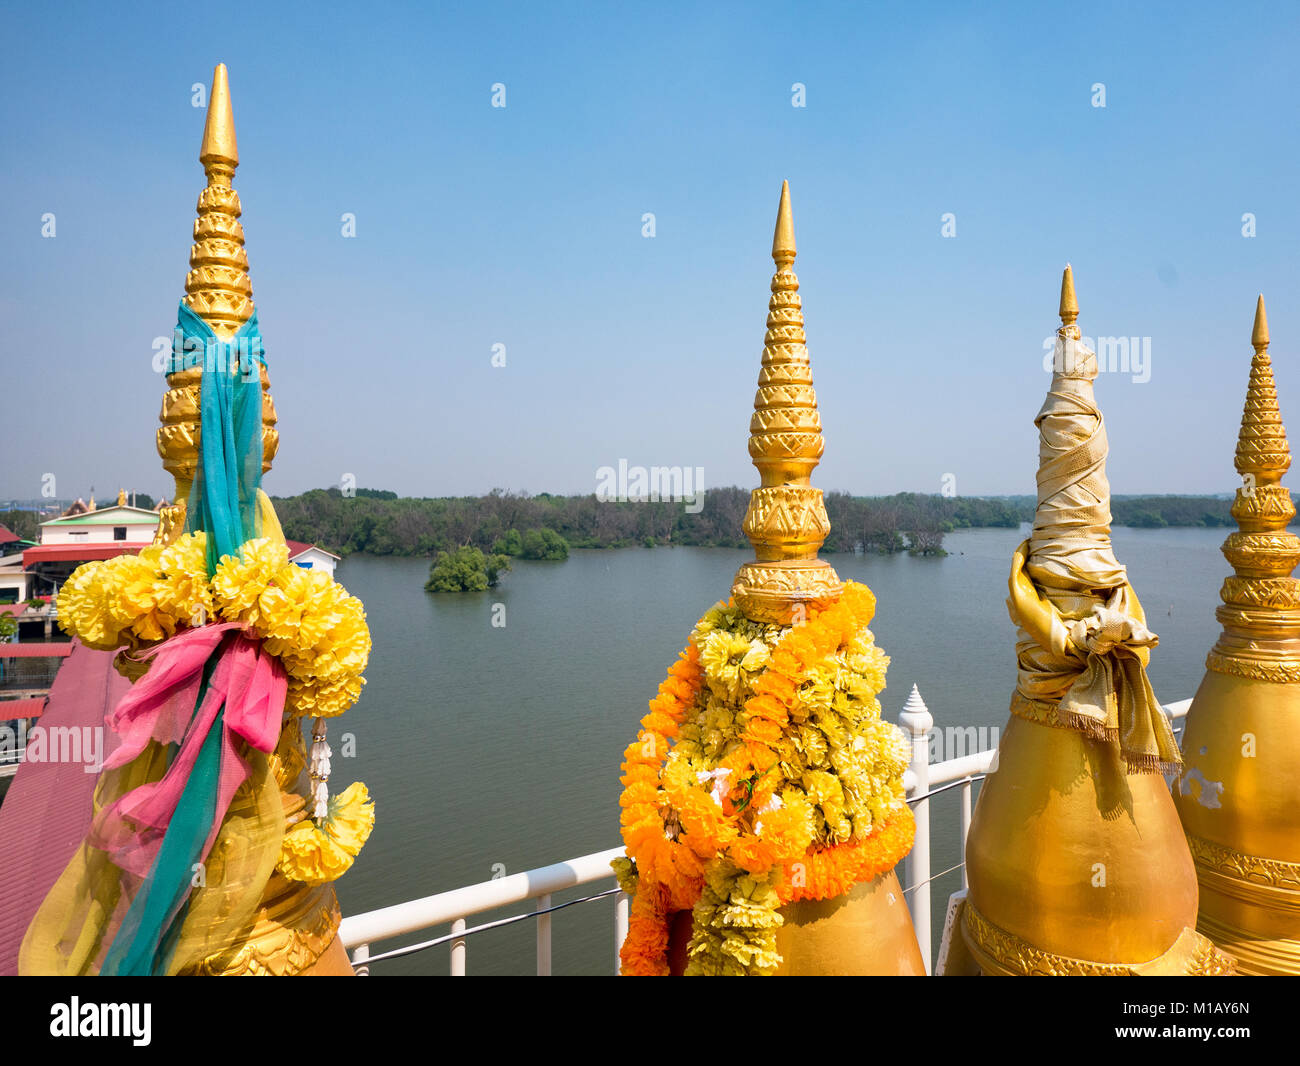 Small stupas at Wat Hong Tong, a Buddhist temple out in the sea in the Chachoengsao Province of Thailand. Mangrove - Stock Image